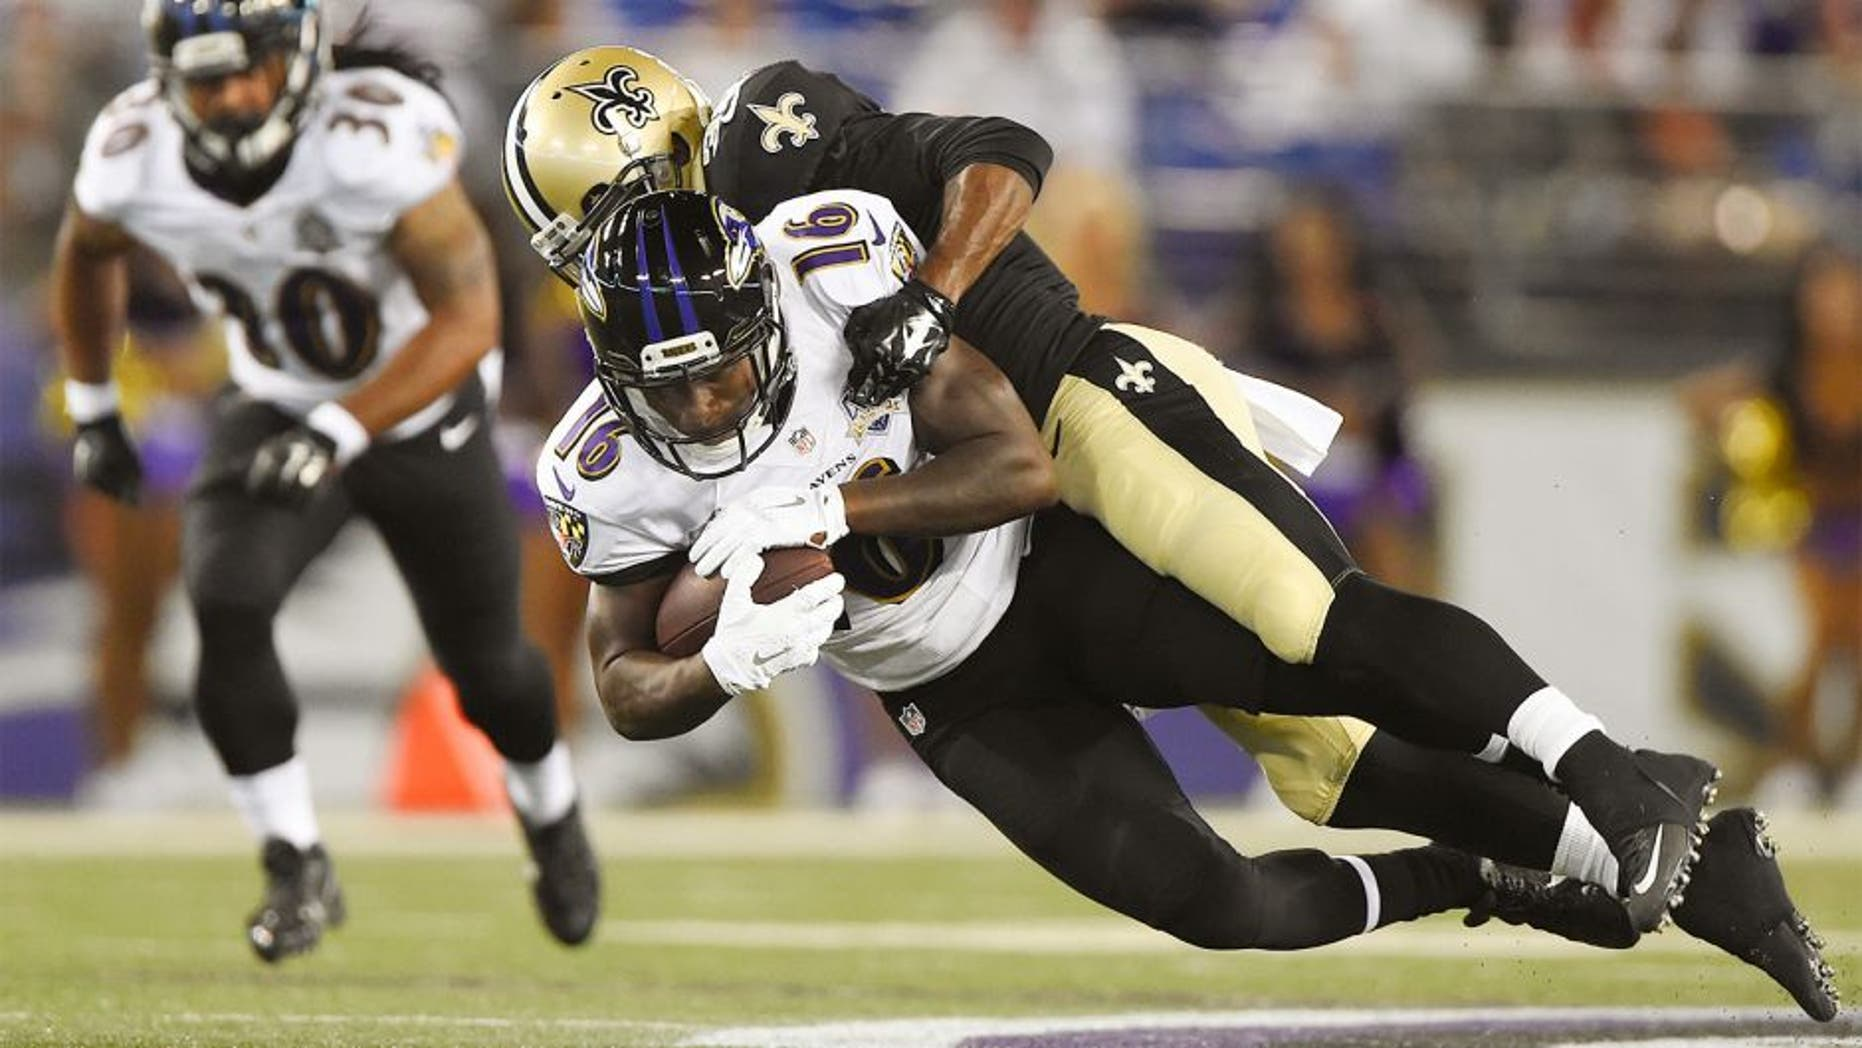 Aug 13, 2015; Baltimore, MD, USA; New Orleans Saints cornerback Damian Swann (38) tackles Baltimore Ravens wide receiver DeAndre Carter (16) during the fourth quarter in a preseason NFL football game at M&T Bank Stadium. Baltimore Ravens defeated New Orleans Saints 30-27. Mandatory Credit: Tommy Gilligan-USA TODAY Sports